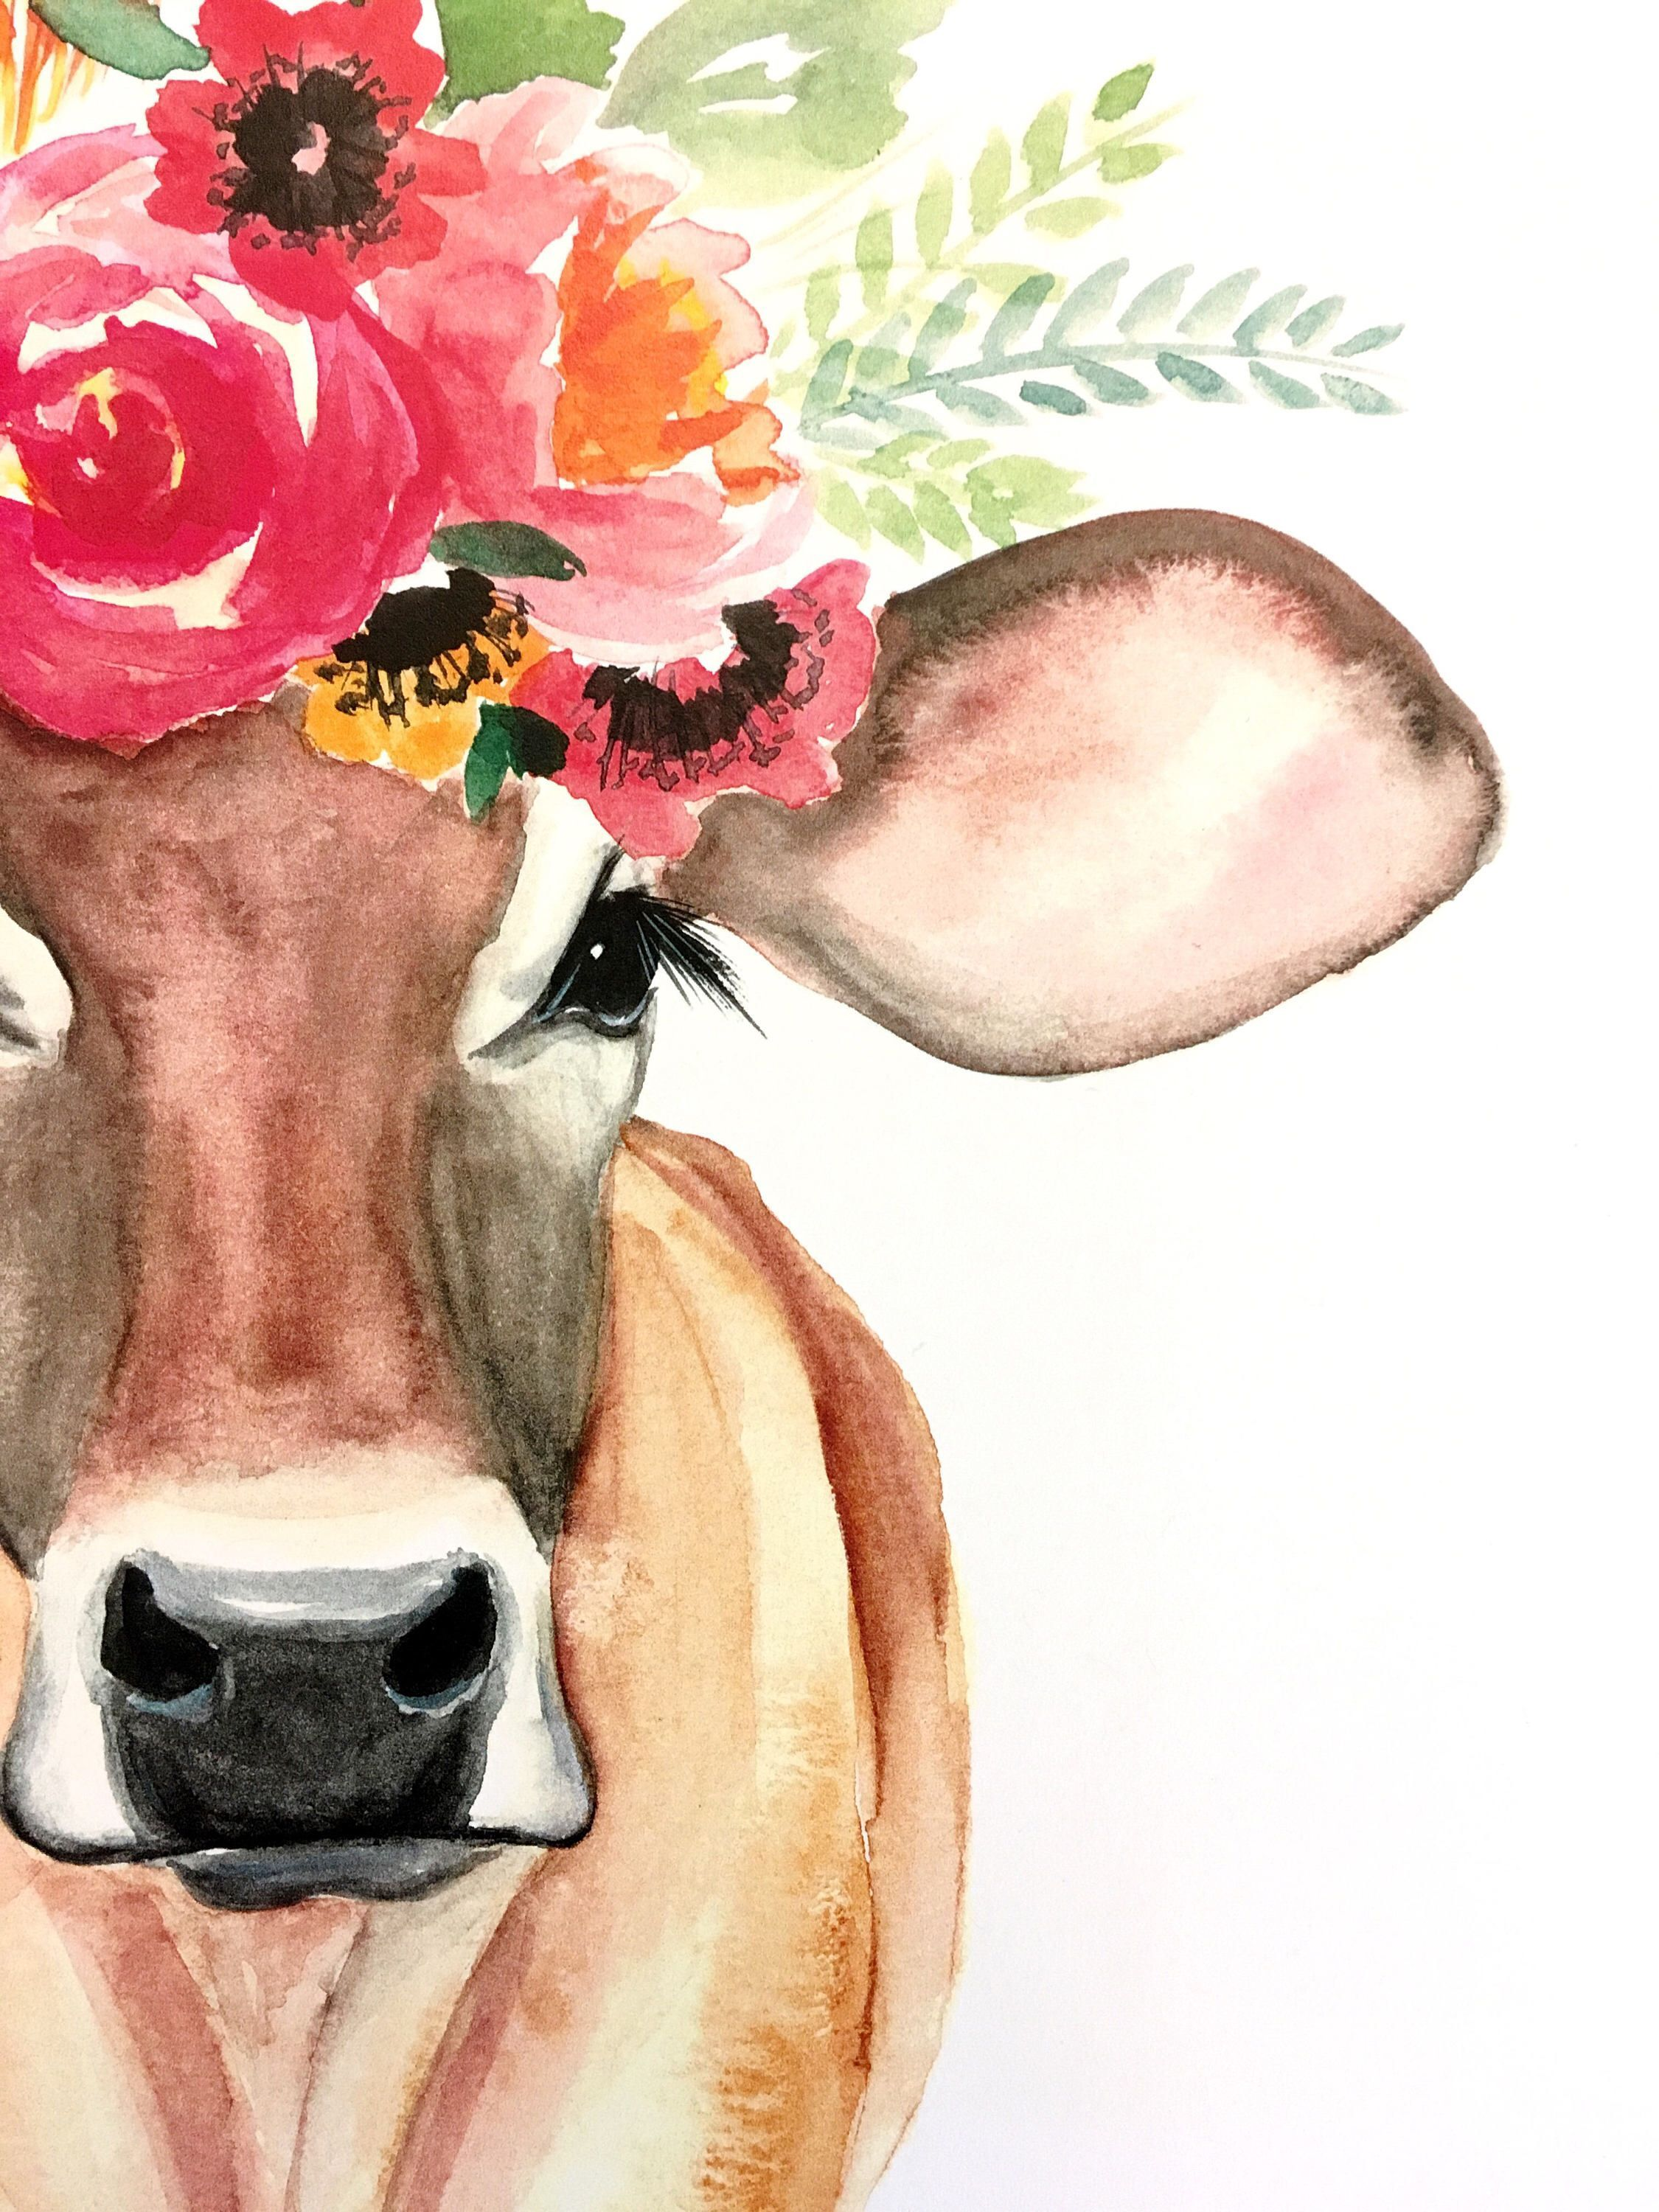 2250x3000 Watercolor Cow With Flower Crown Moo Art